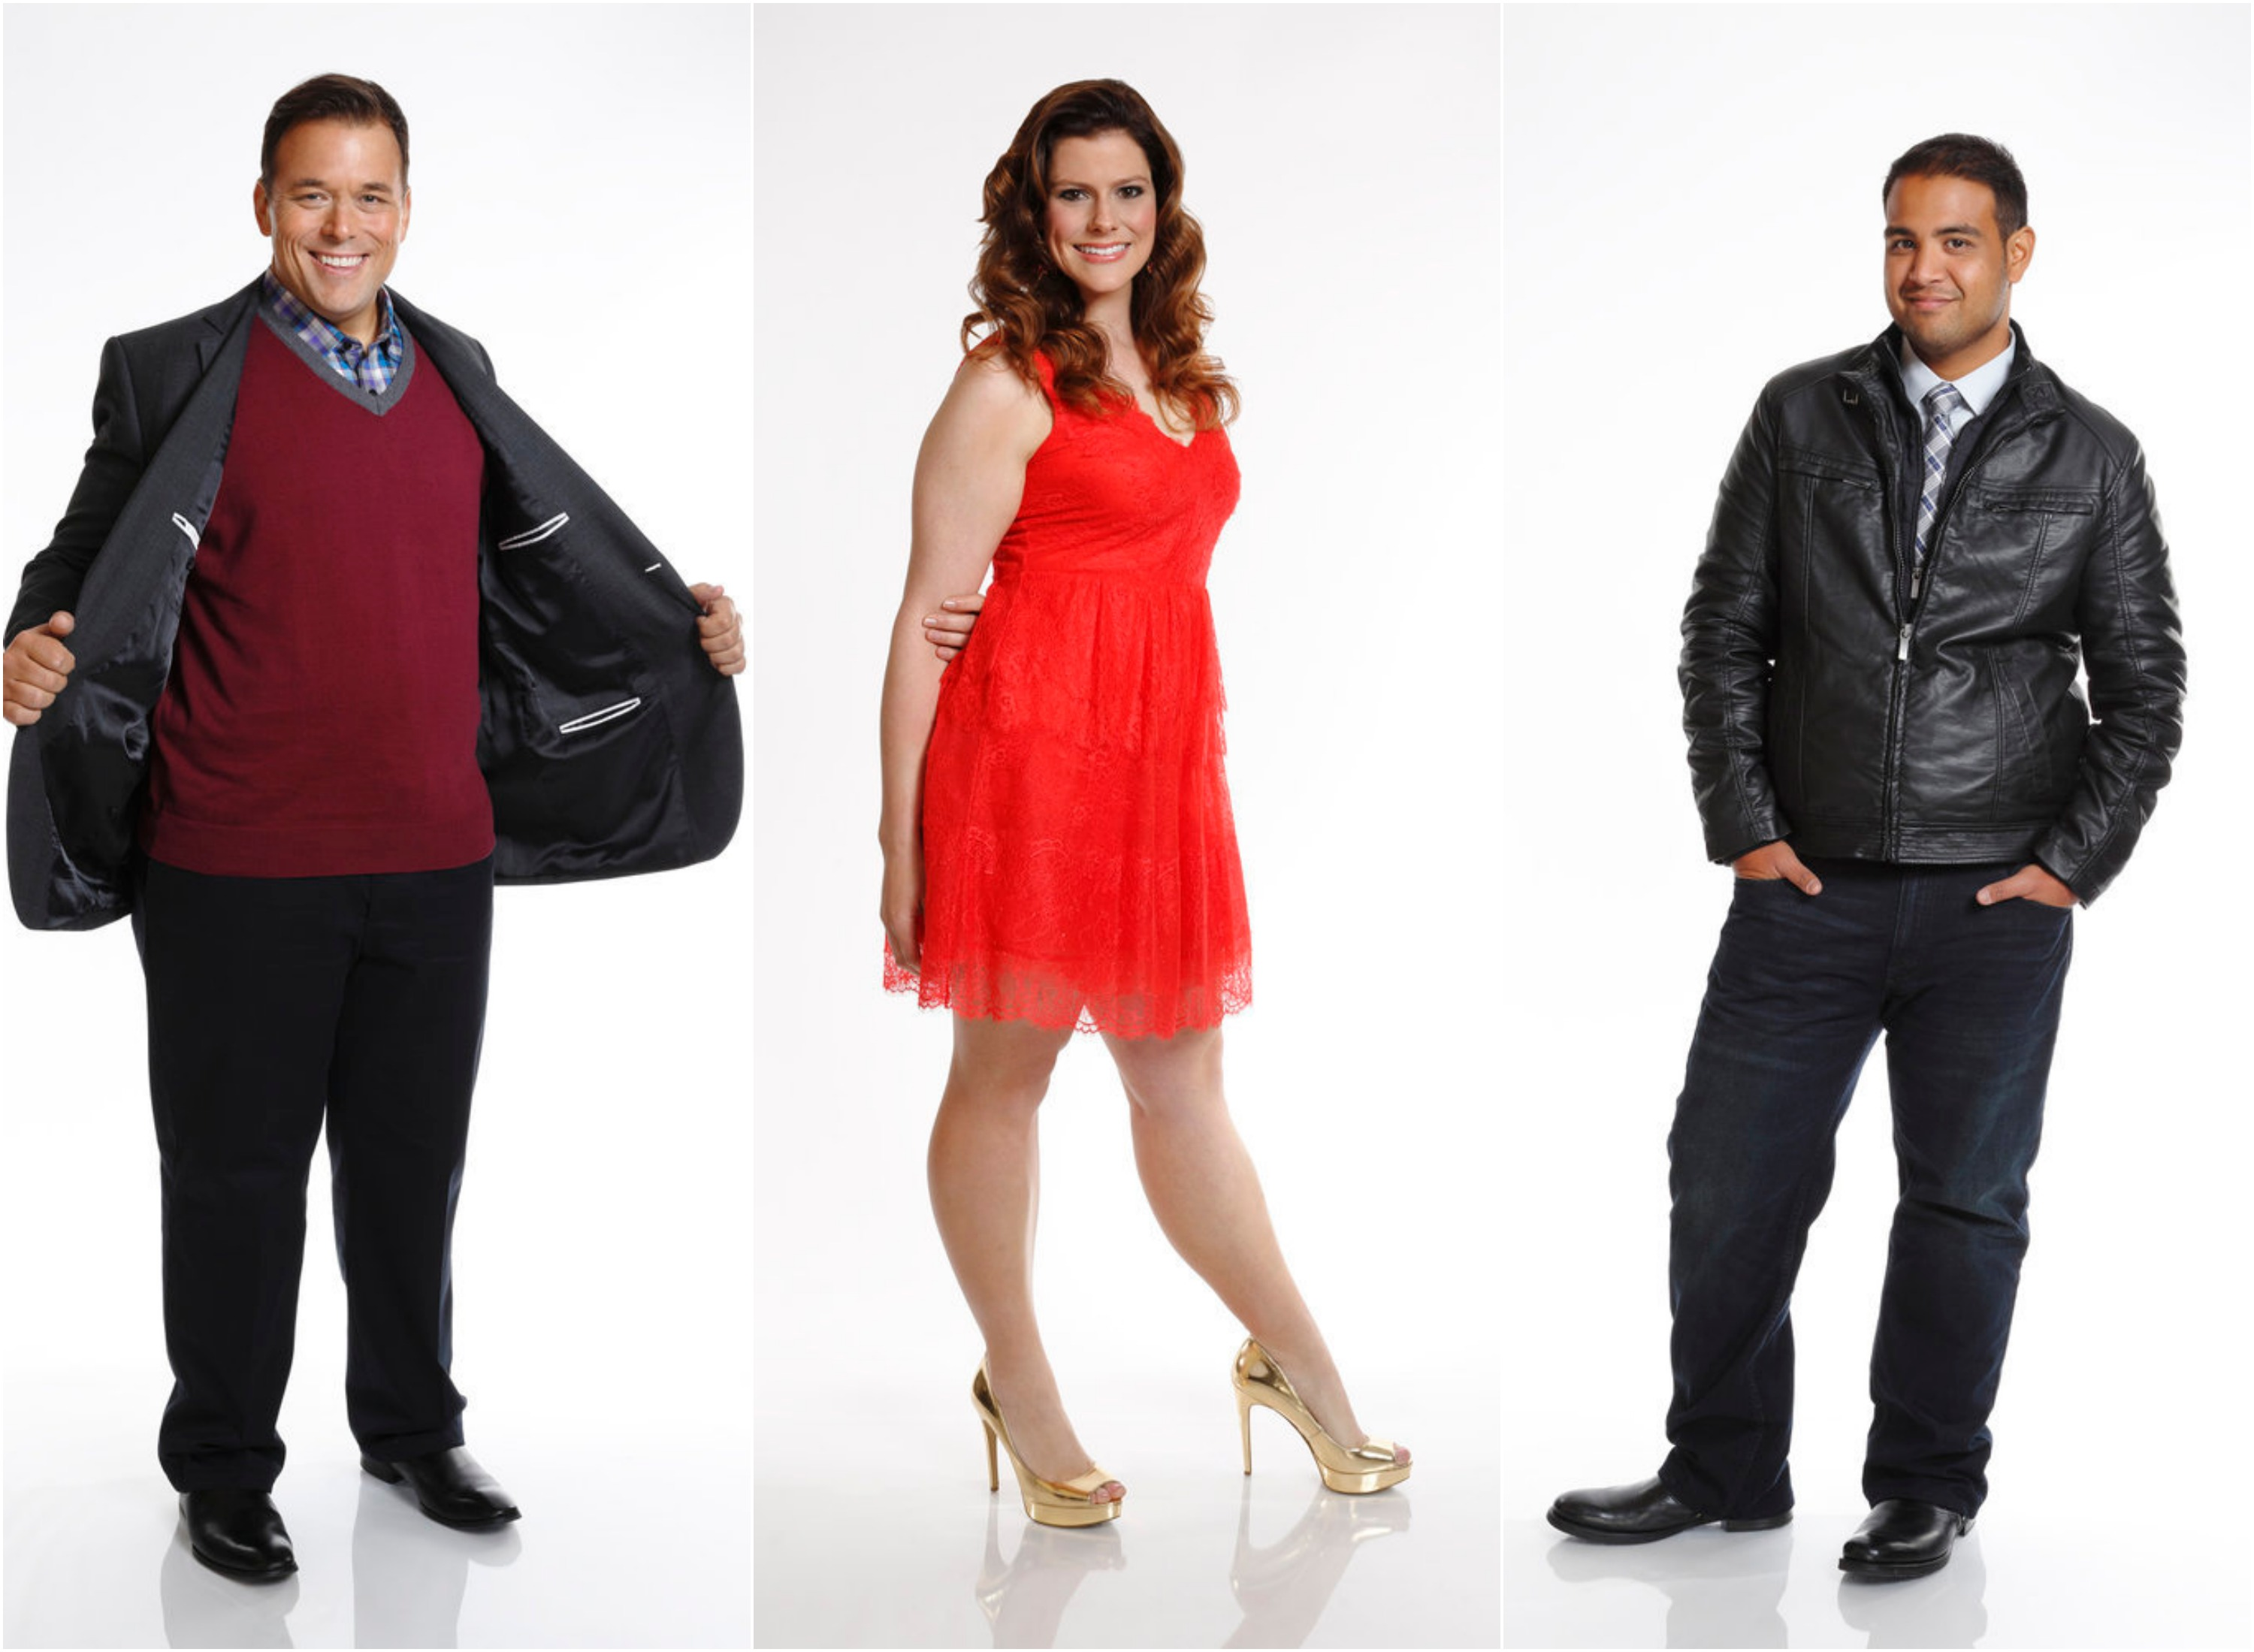 Who Won The Biggest Loser 2014 Tonight? Finale